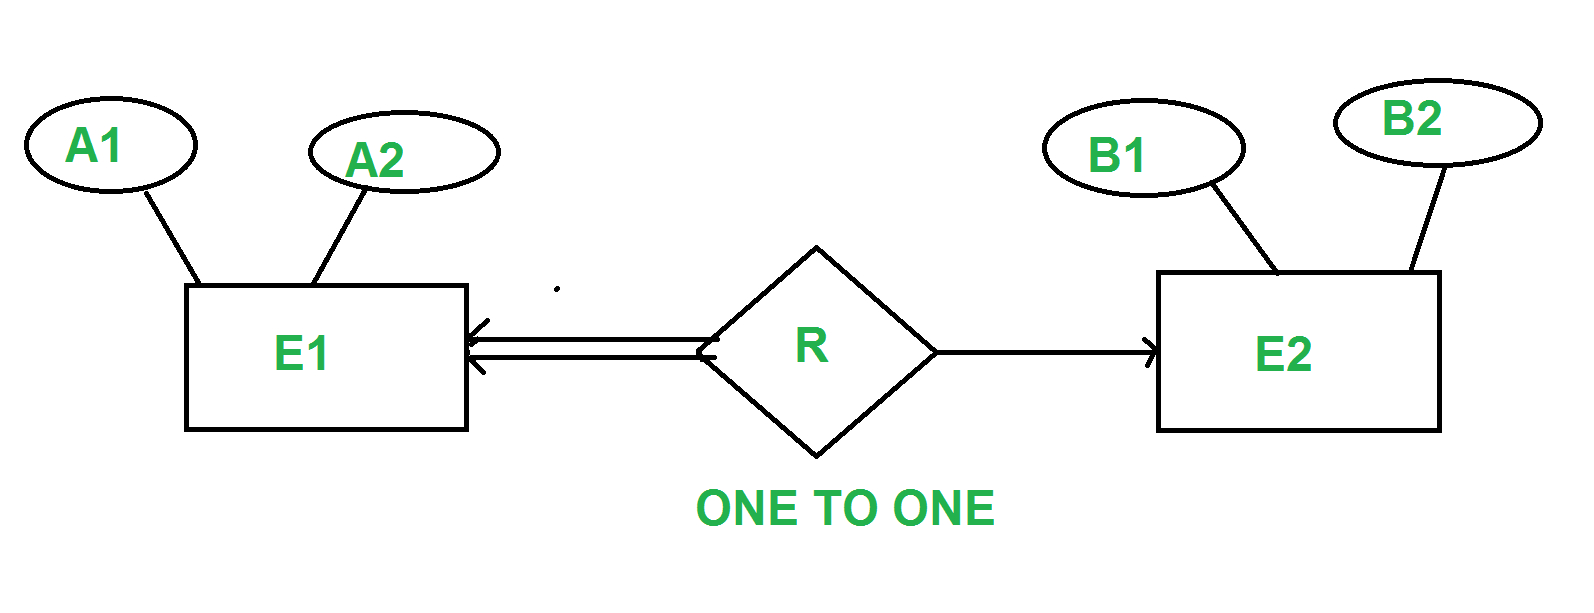 Minimization Of Er Diagram - Geeksforgeeks in One To One Er Diagram Examples